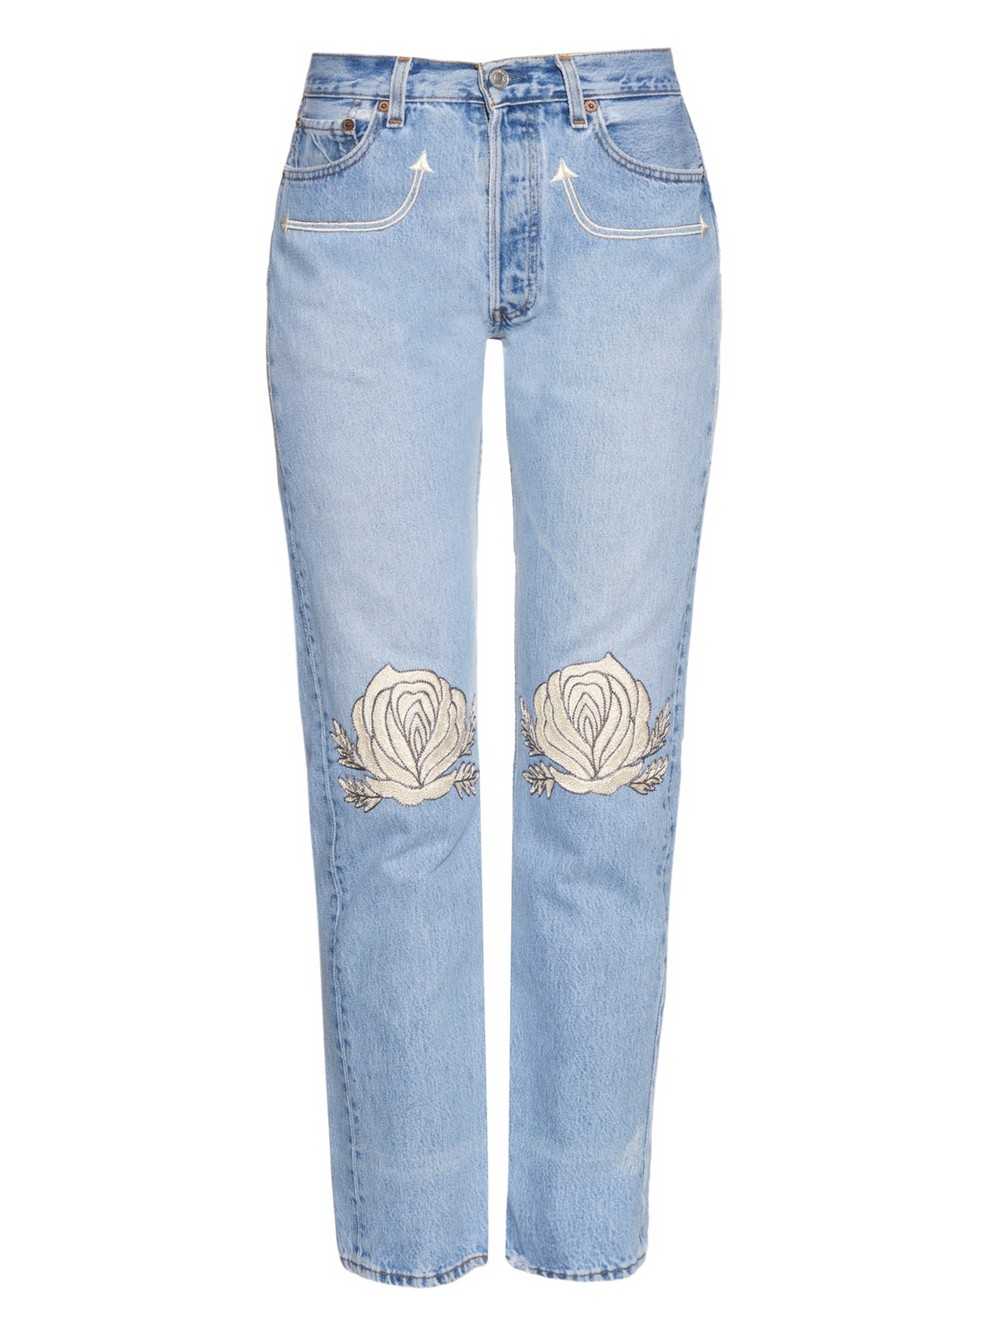 Bliss and Mischief jeans - Matches.jpg